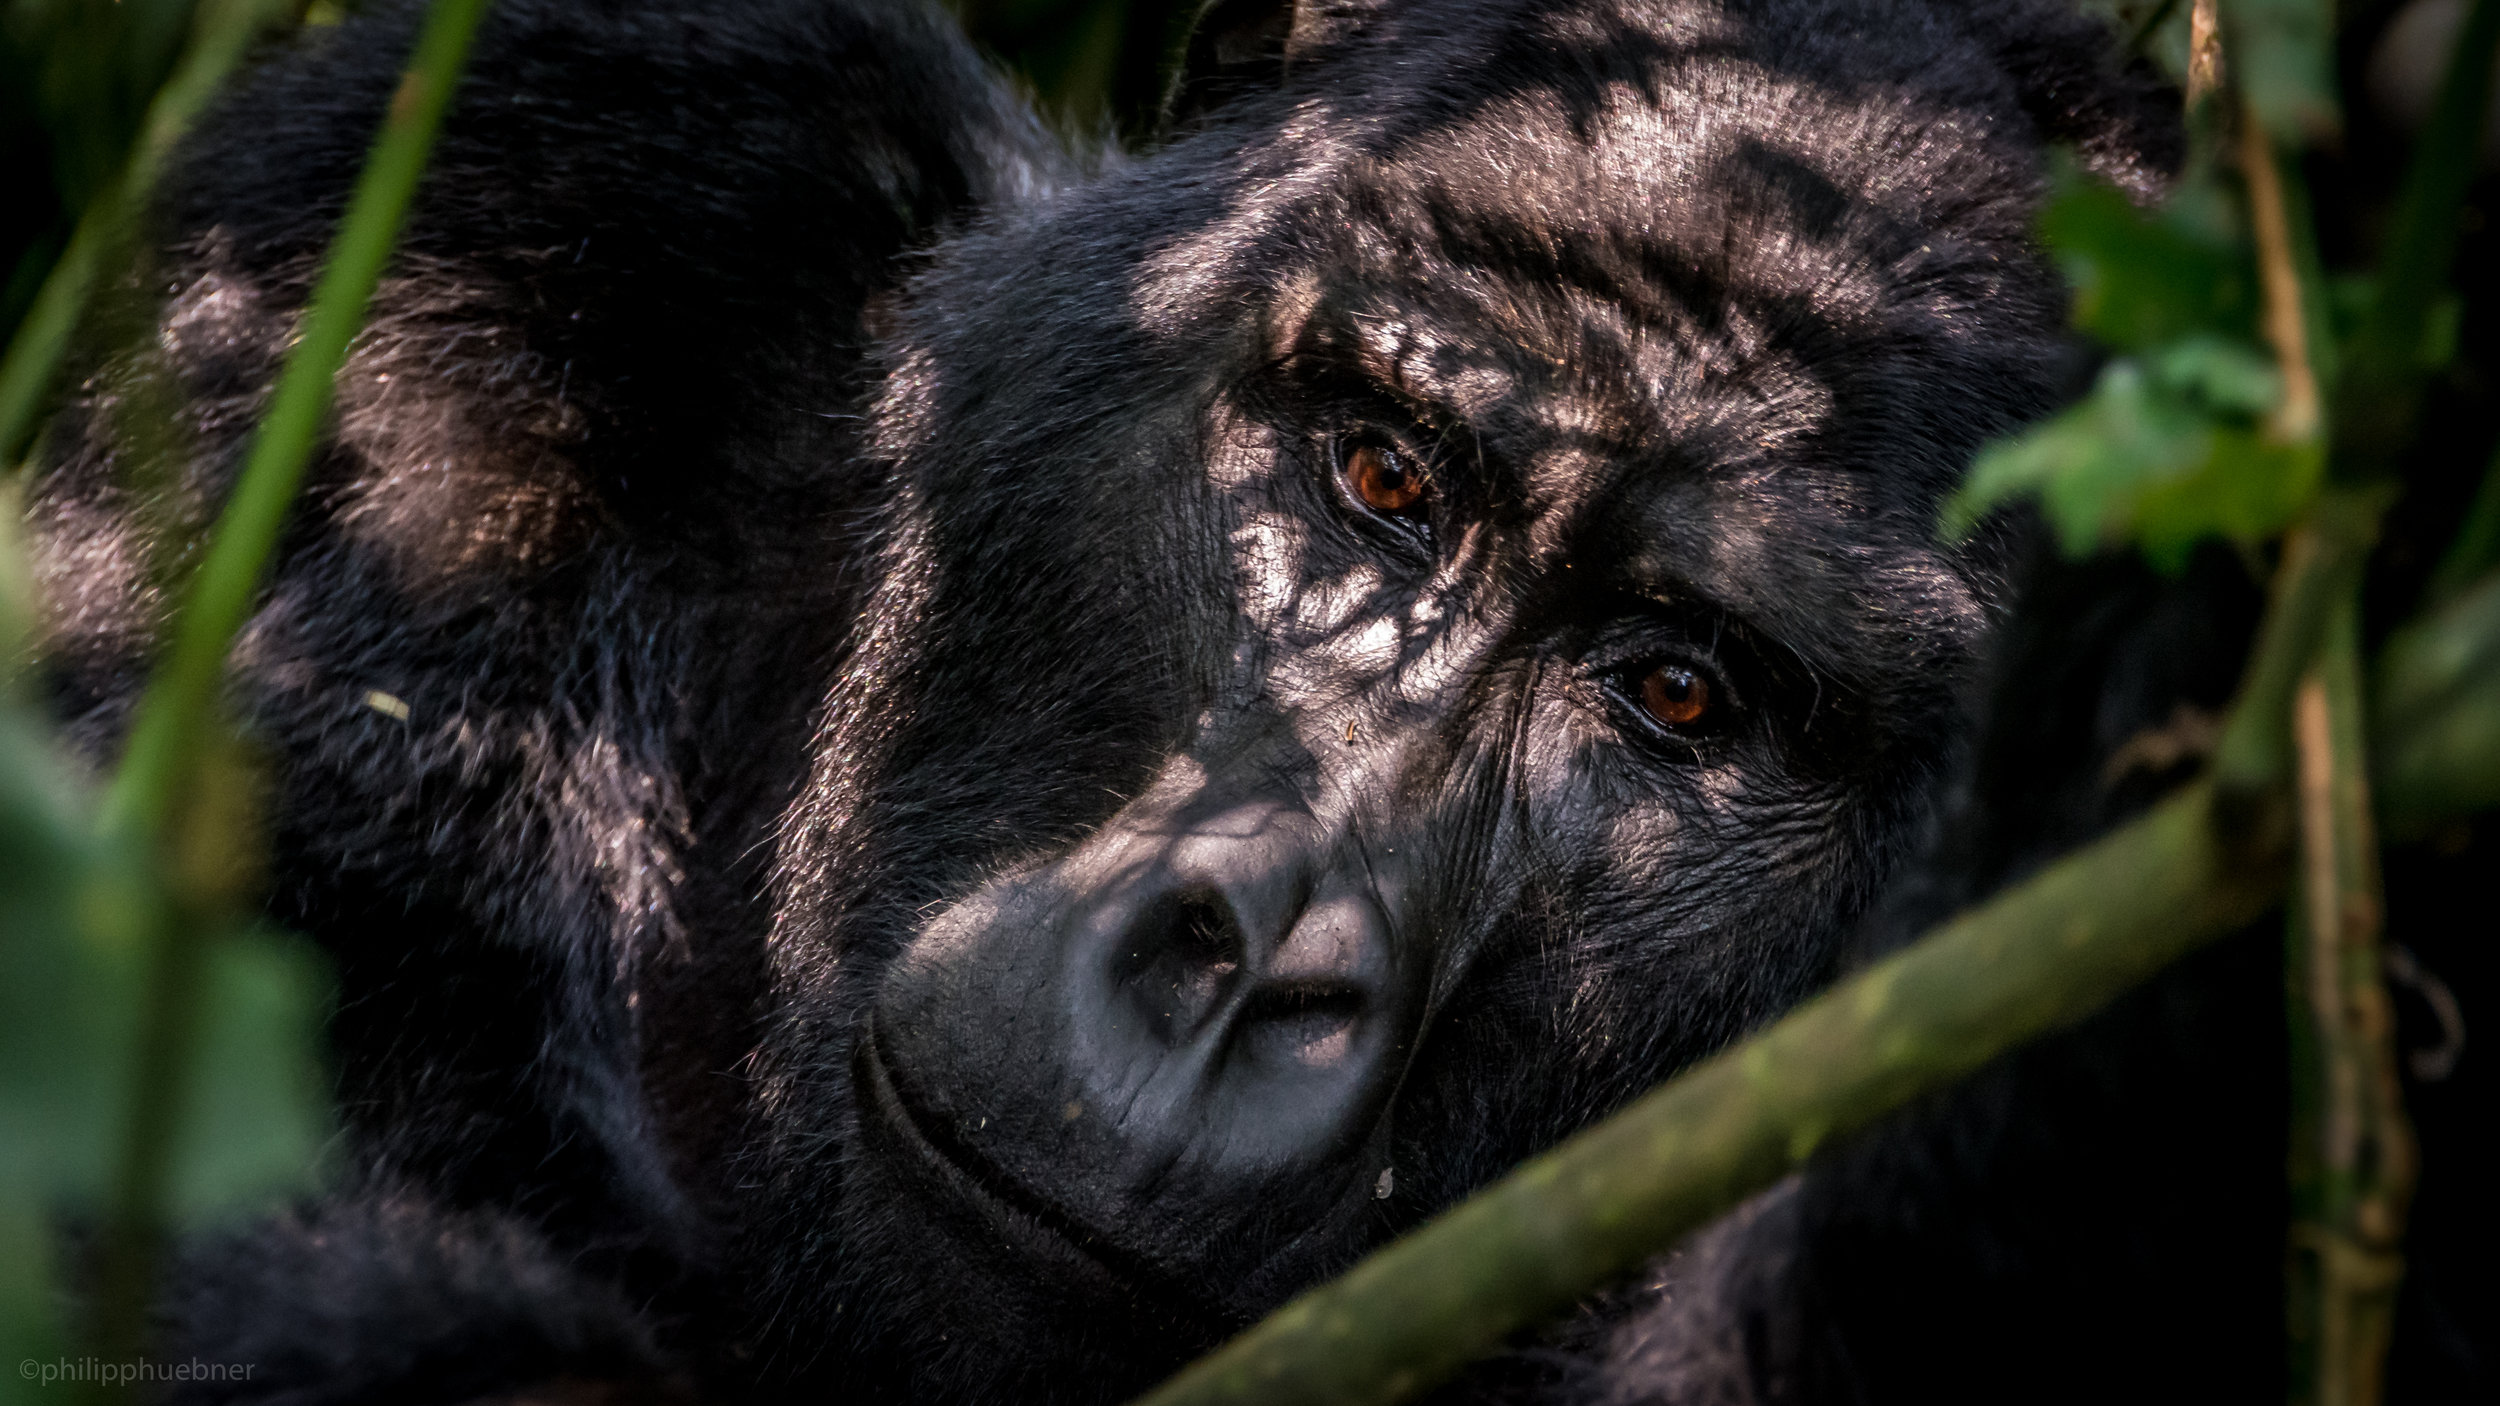 Uganda 2016   6 weeks here, besides work commitments in Mbarara and Arua I was able to visit the mountain gorillas in Bwindi Impenetrable Forest, drive through the Elizabeth National Park and almost got a membership to the Arua Golf Club.